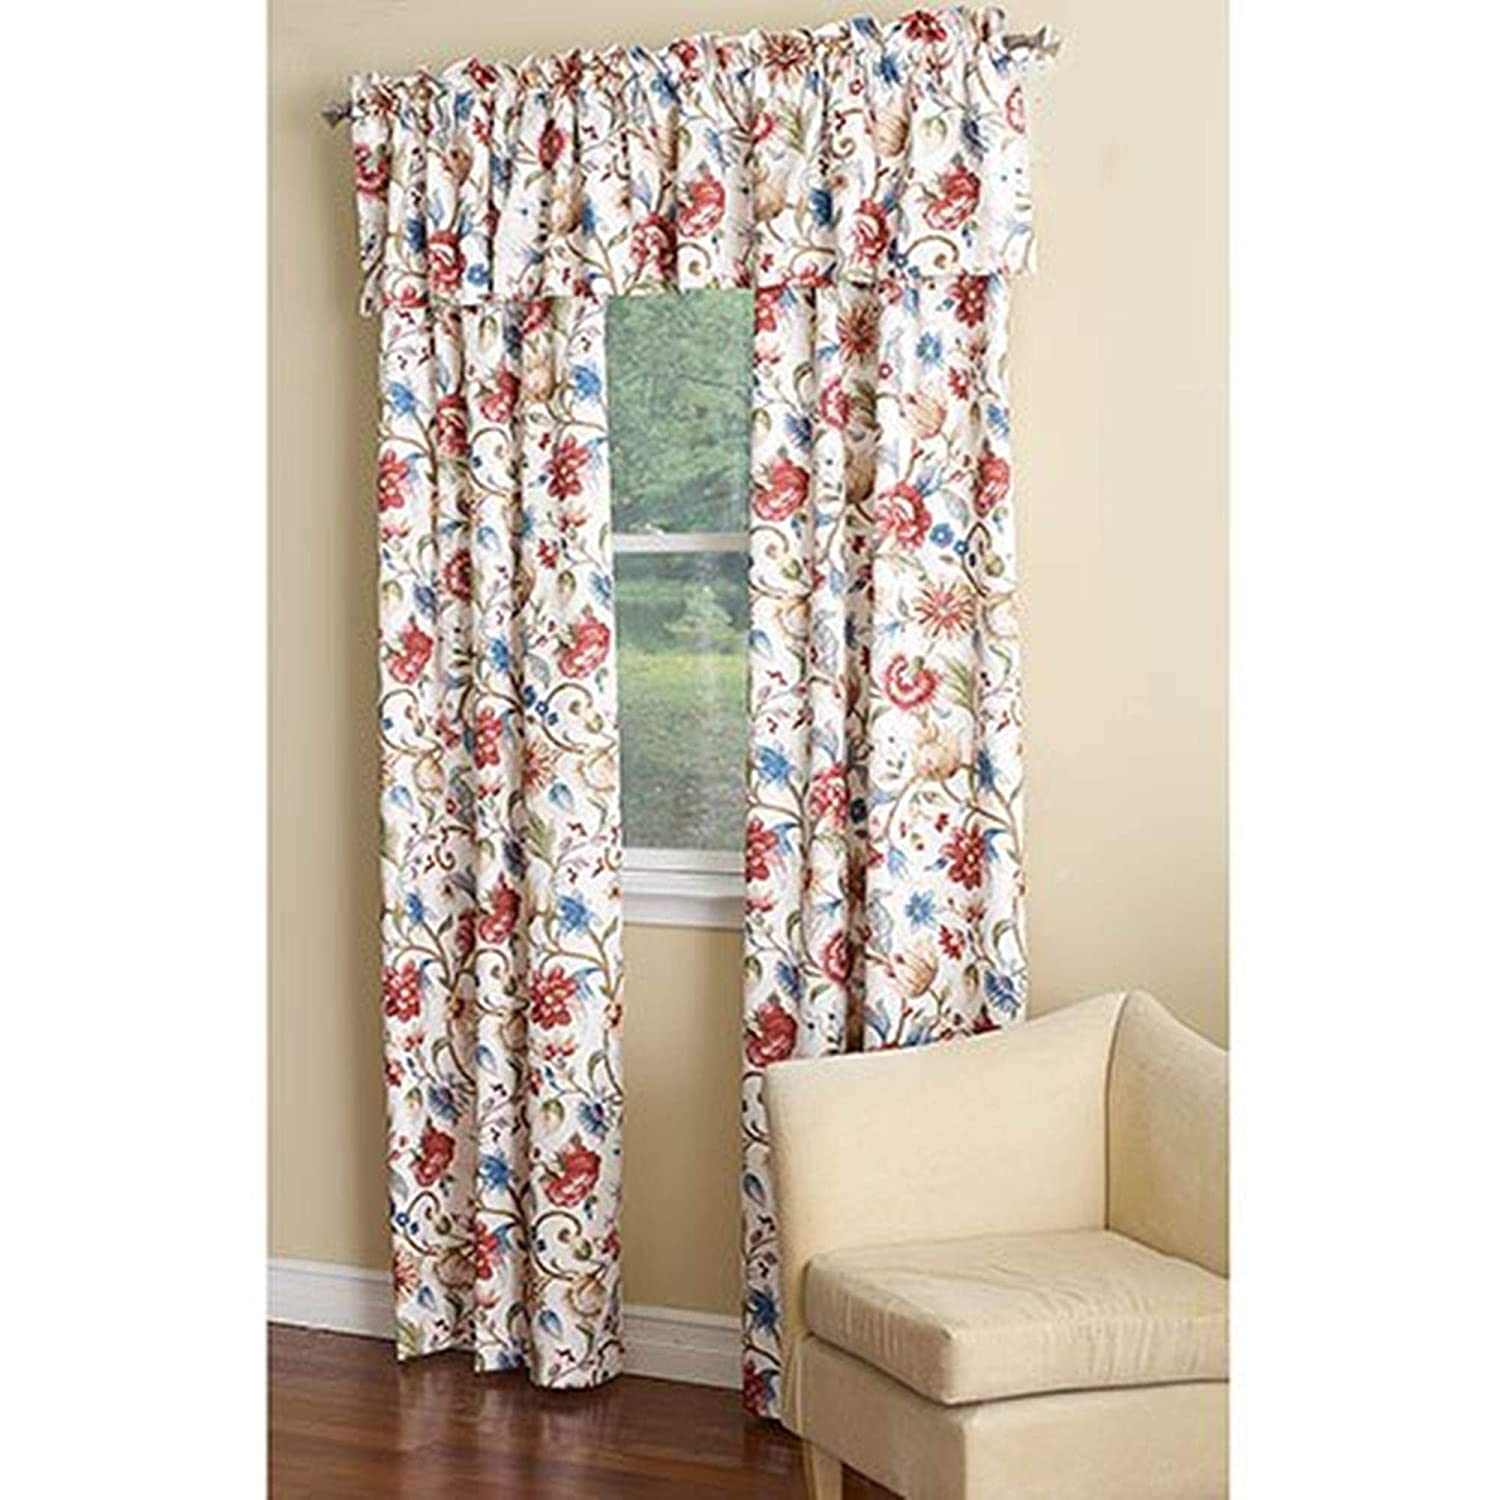 Ellis Curtain Cornwall Jacobean Floral Thermal Insulated Tailored Valance, 80 by 15-Inch, Multicolor 730462112415